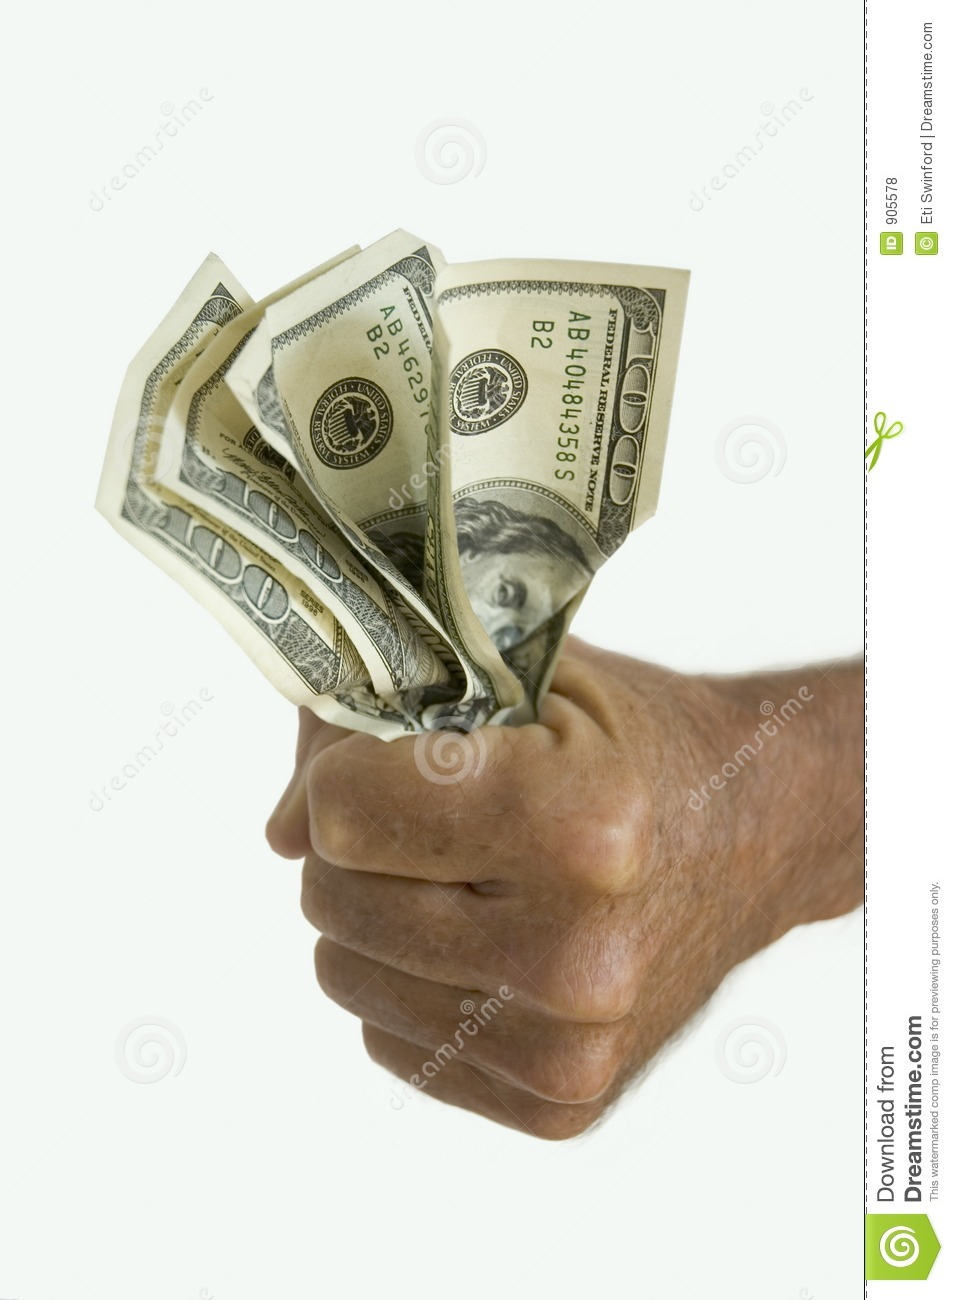 Hand holding money stock photo. Image of save, fist, cash ...Holding Money In Hand